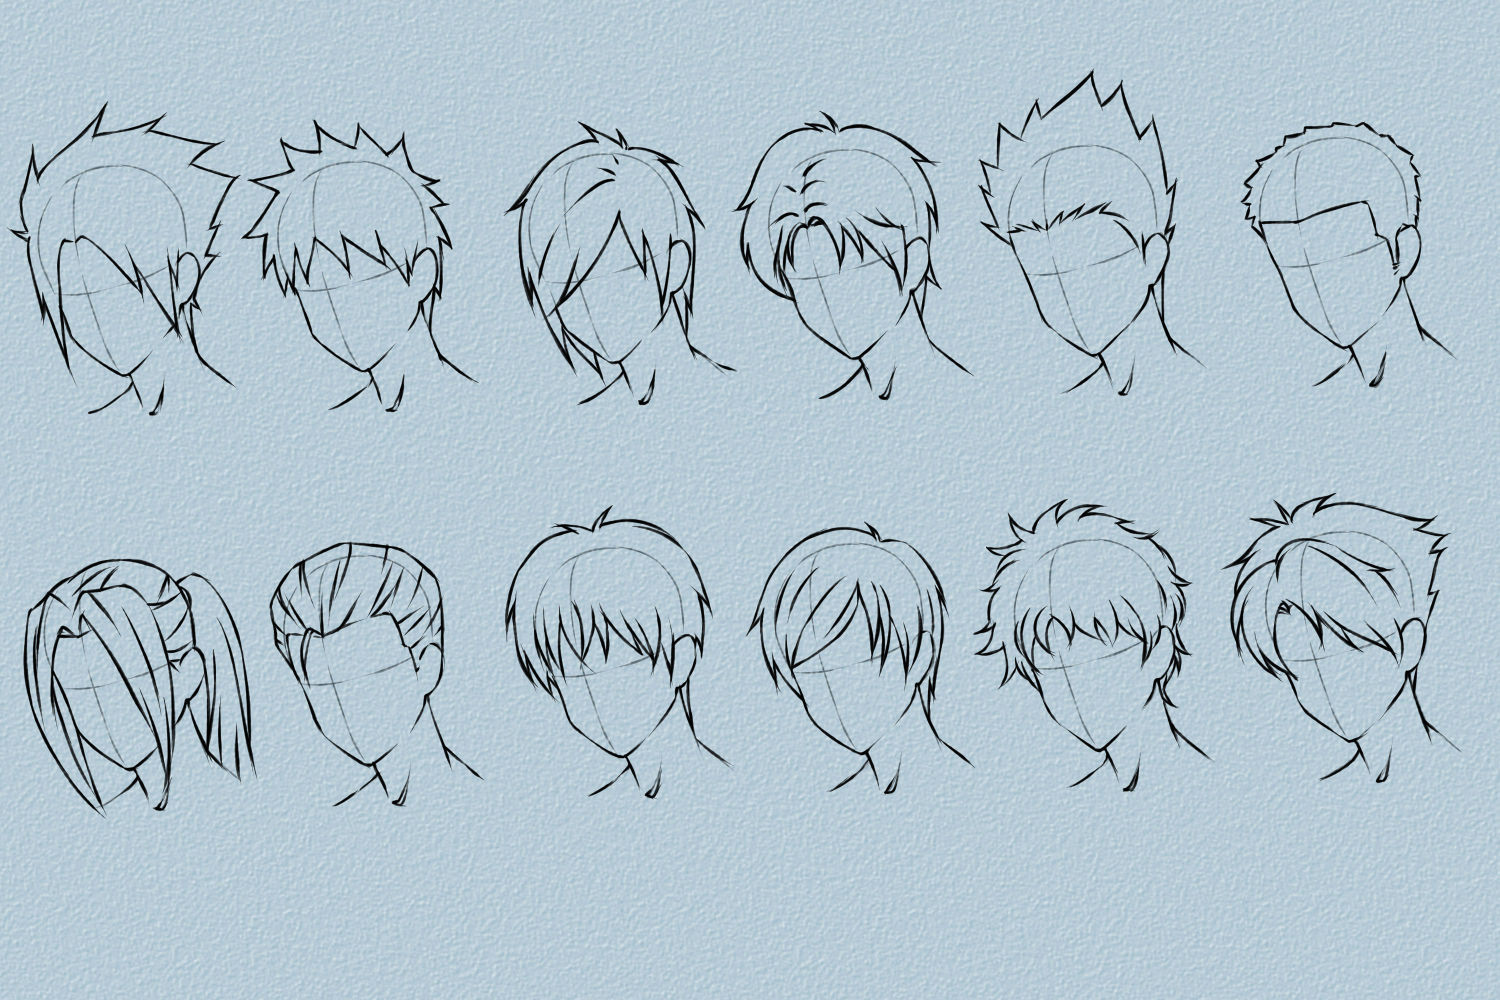 Best ideas about Male Anime Hairstyles . Save or Pin Model hairstyles for Male Anime Hairstyles How to Draw Now.